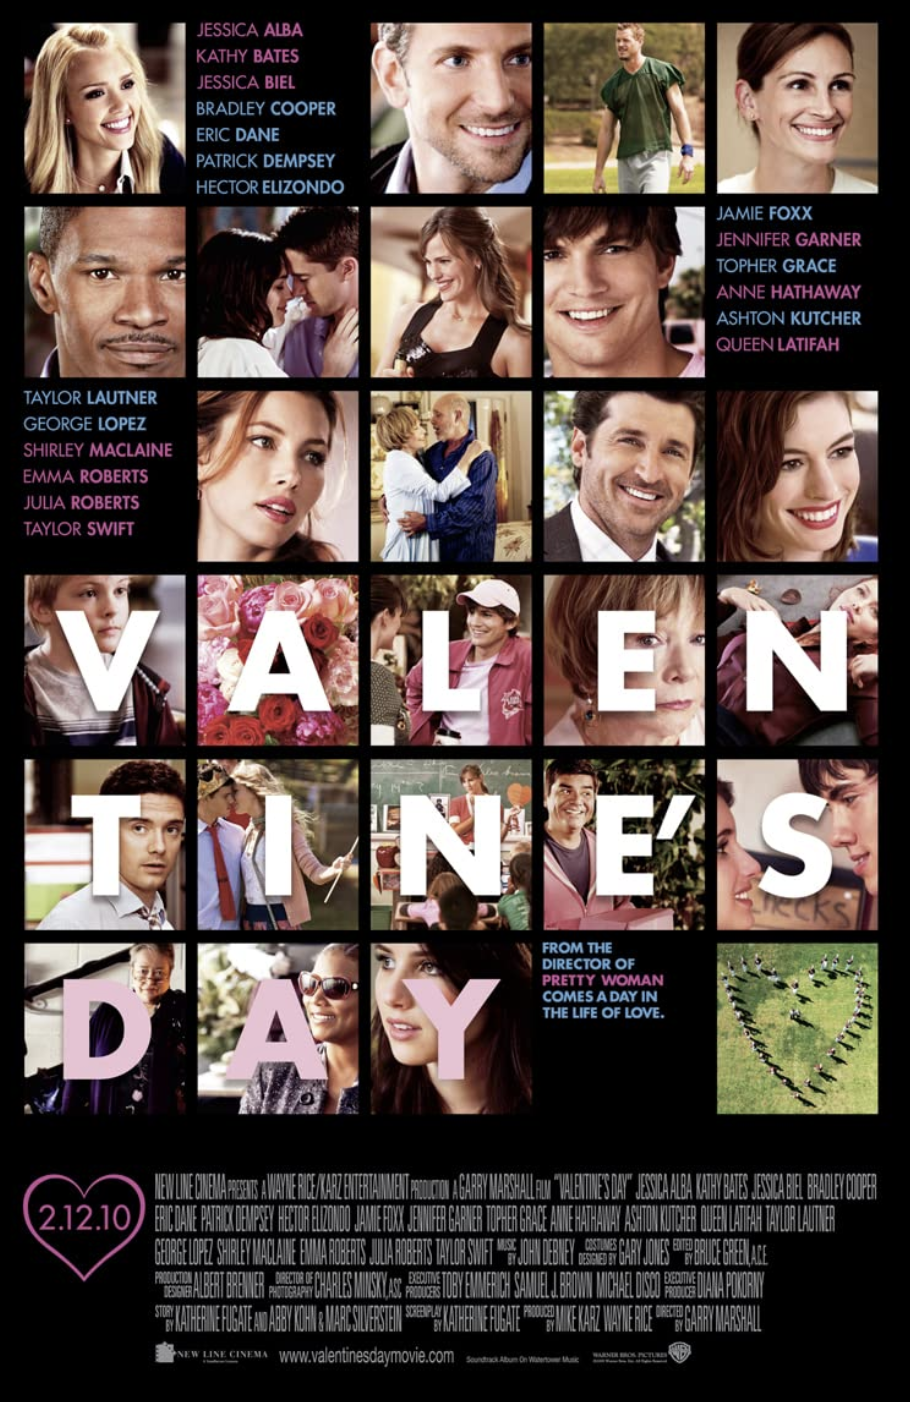 "<p>This star-studded film follows intertwining love stories taking place on Valentine's Day. Some of the notable cast members include Jennifer Garner, Jessica Alba, Patrick Dempsey, Anne Hathaway, Ashton Kutcher, and many, many more.</p><p><a class=""link rapid-noclick-resp"" href=""https://www.netflix.com/search?q=valen&jbv=70124804"" rel=""nofollow noopener"" target=""_blank"" data-ylk=""slk:STREAM NOW"">STREAM NOW</a></p>"